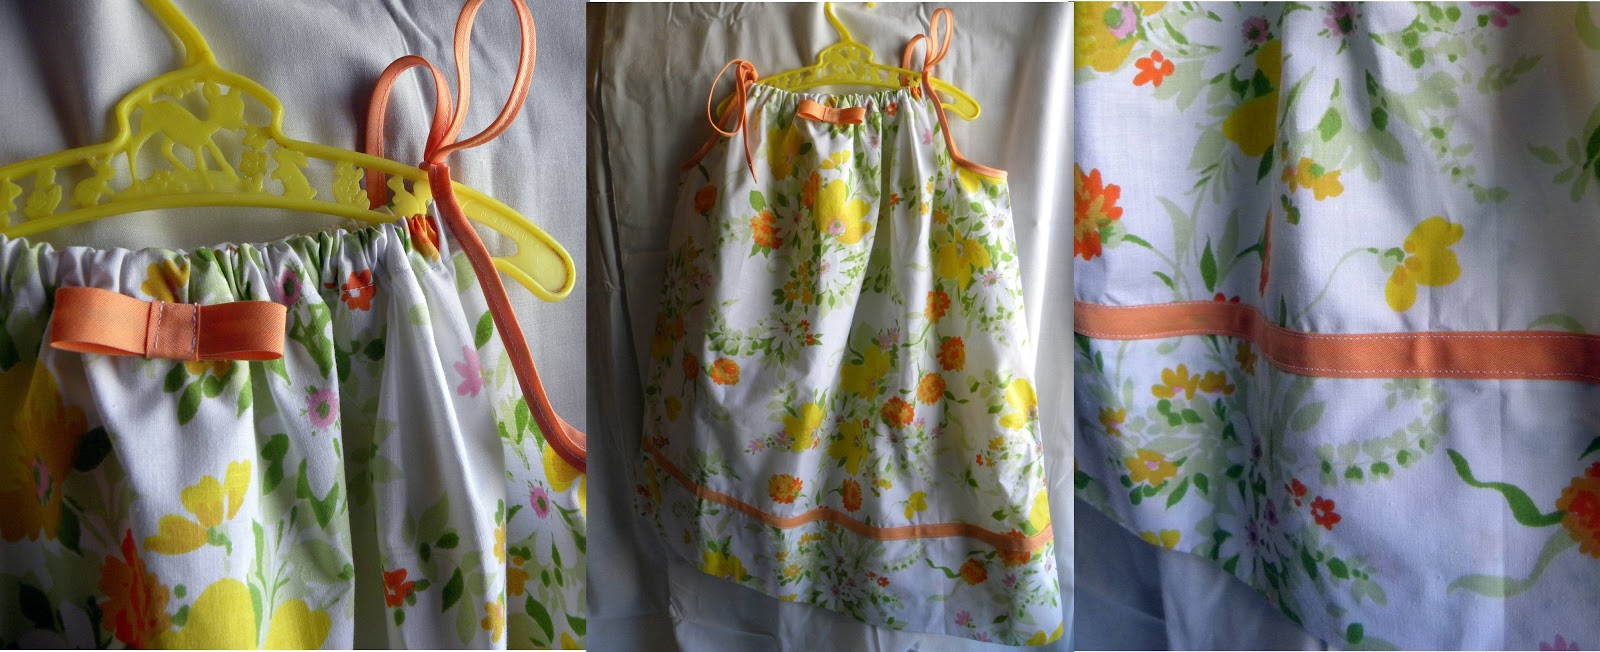 Cute Ideas For Pillowcase Dresses : 402 Center Street Designs: Pillowcase Dress Tutorial